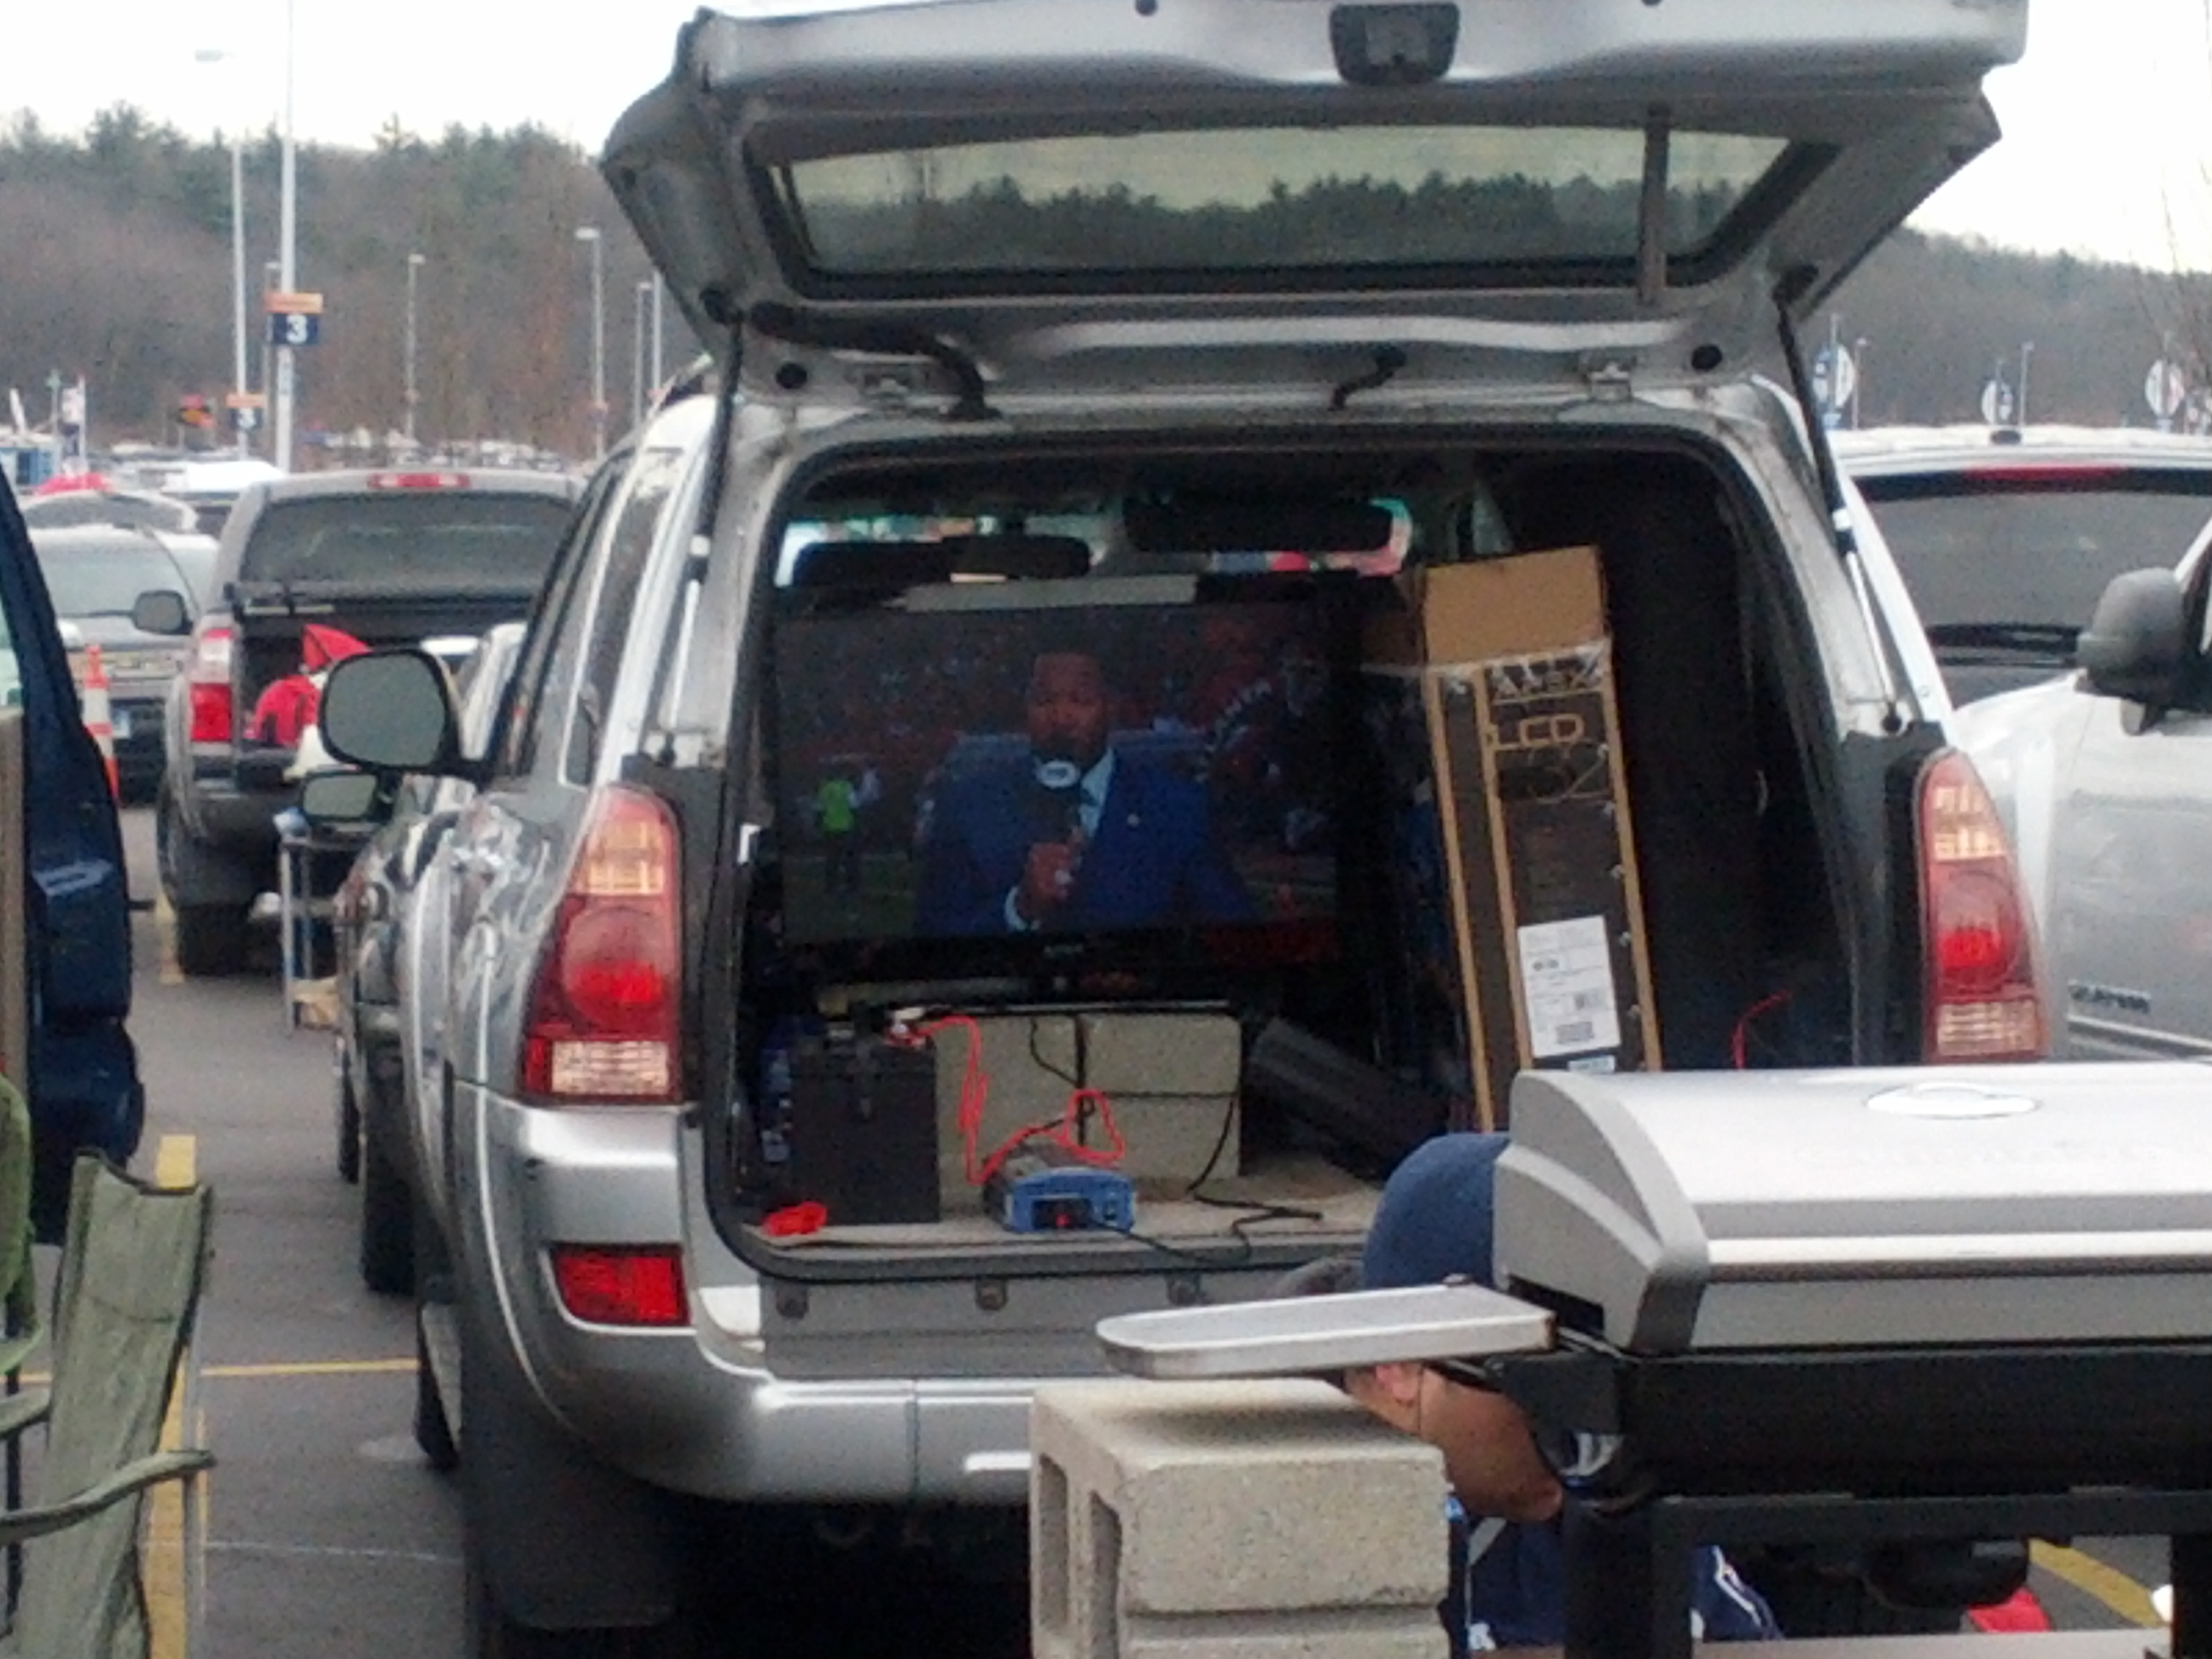 The NFC Championship game on somebody's television in their trunk.